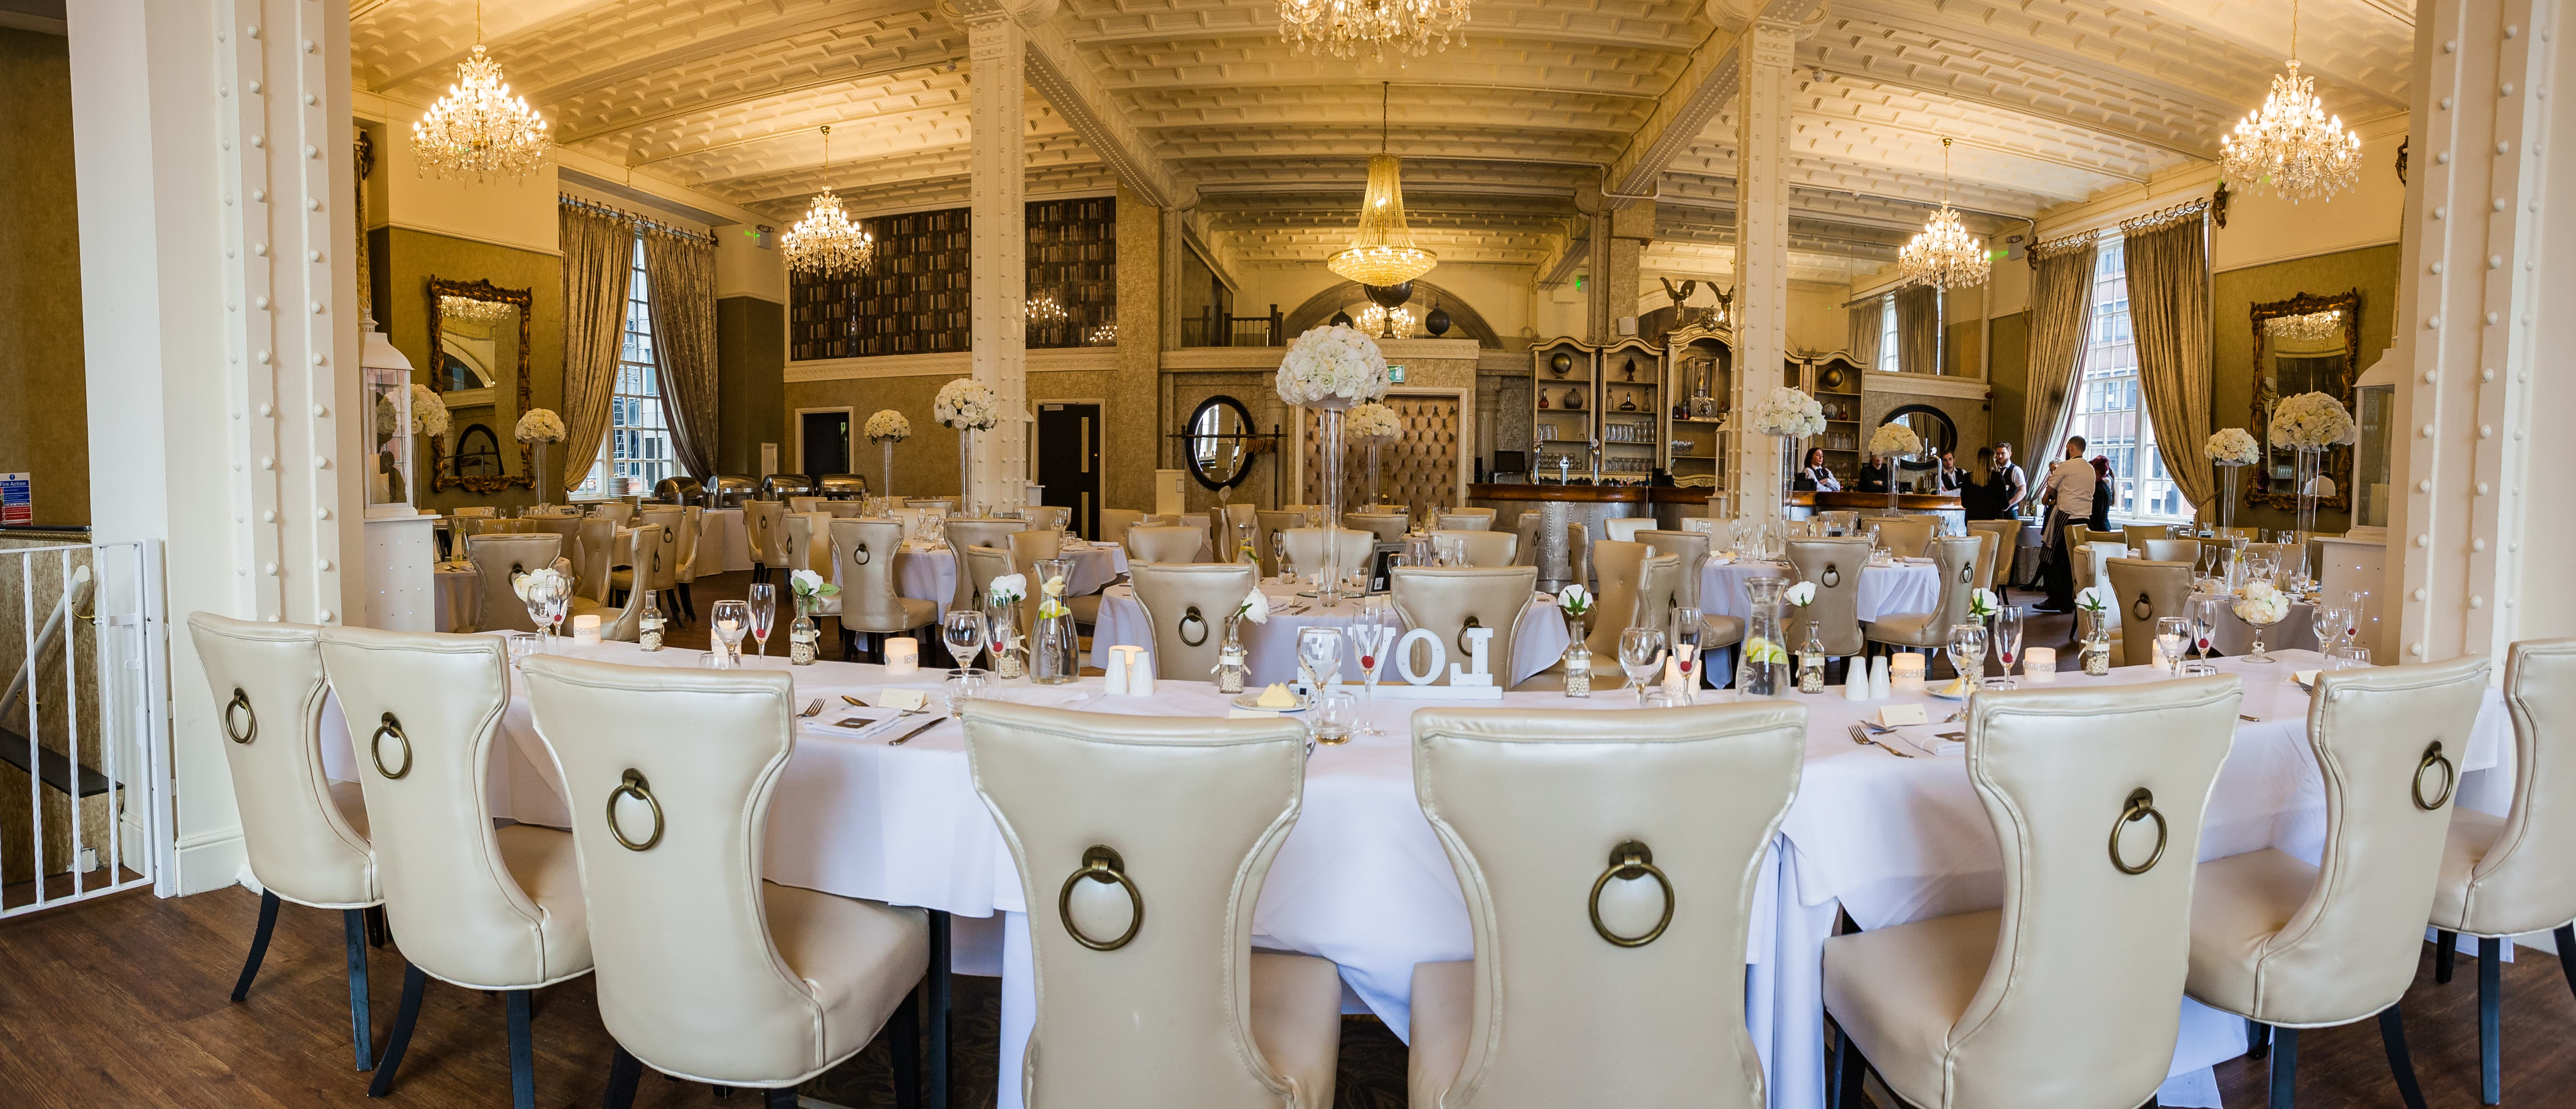 Top Table Hotel Hotel 30 James street Liverpool